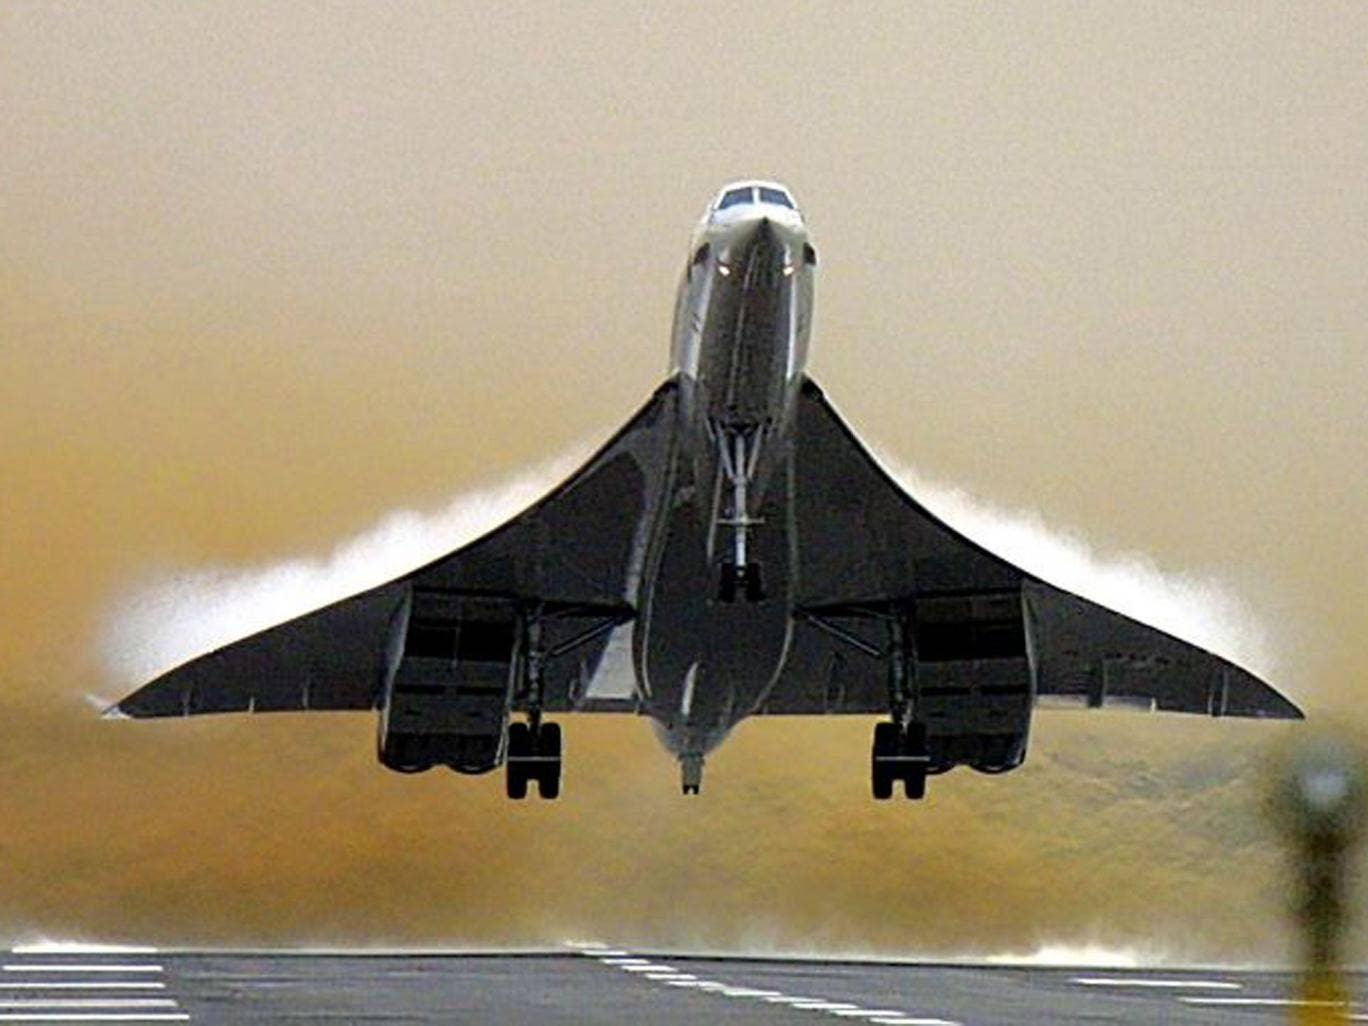 Gone west: Concorde stopped flying in 2003